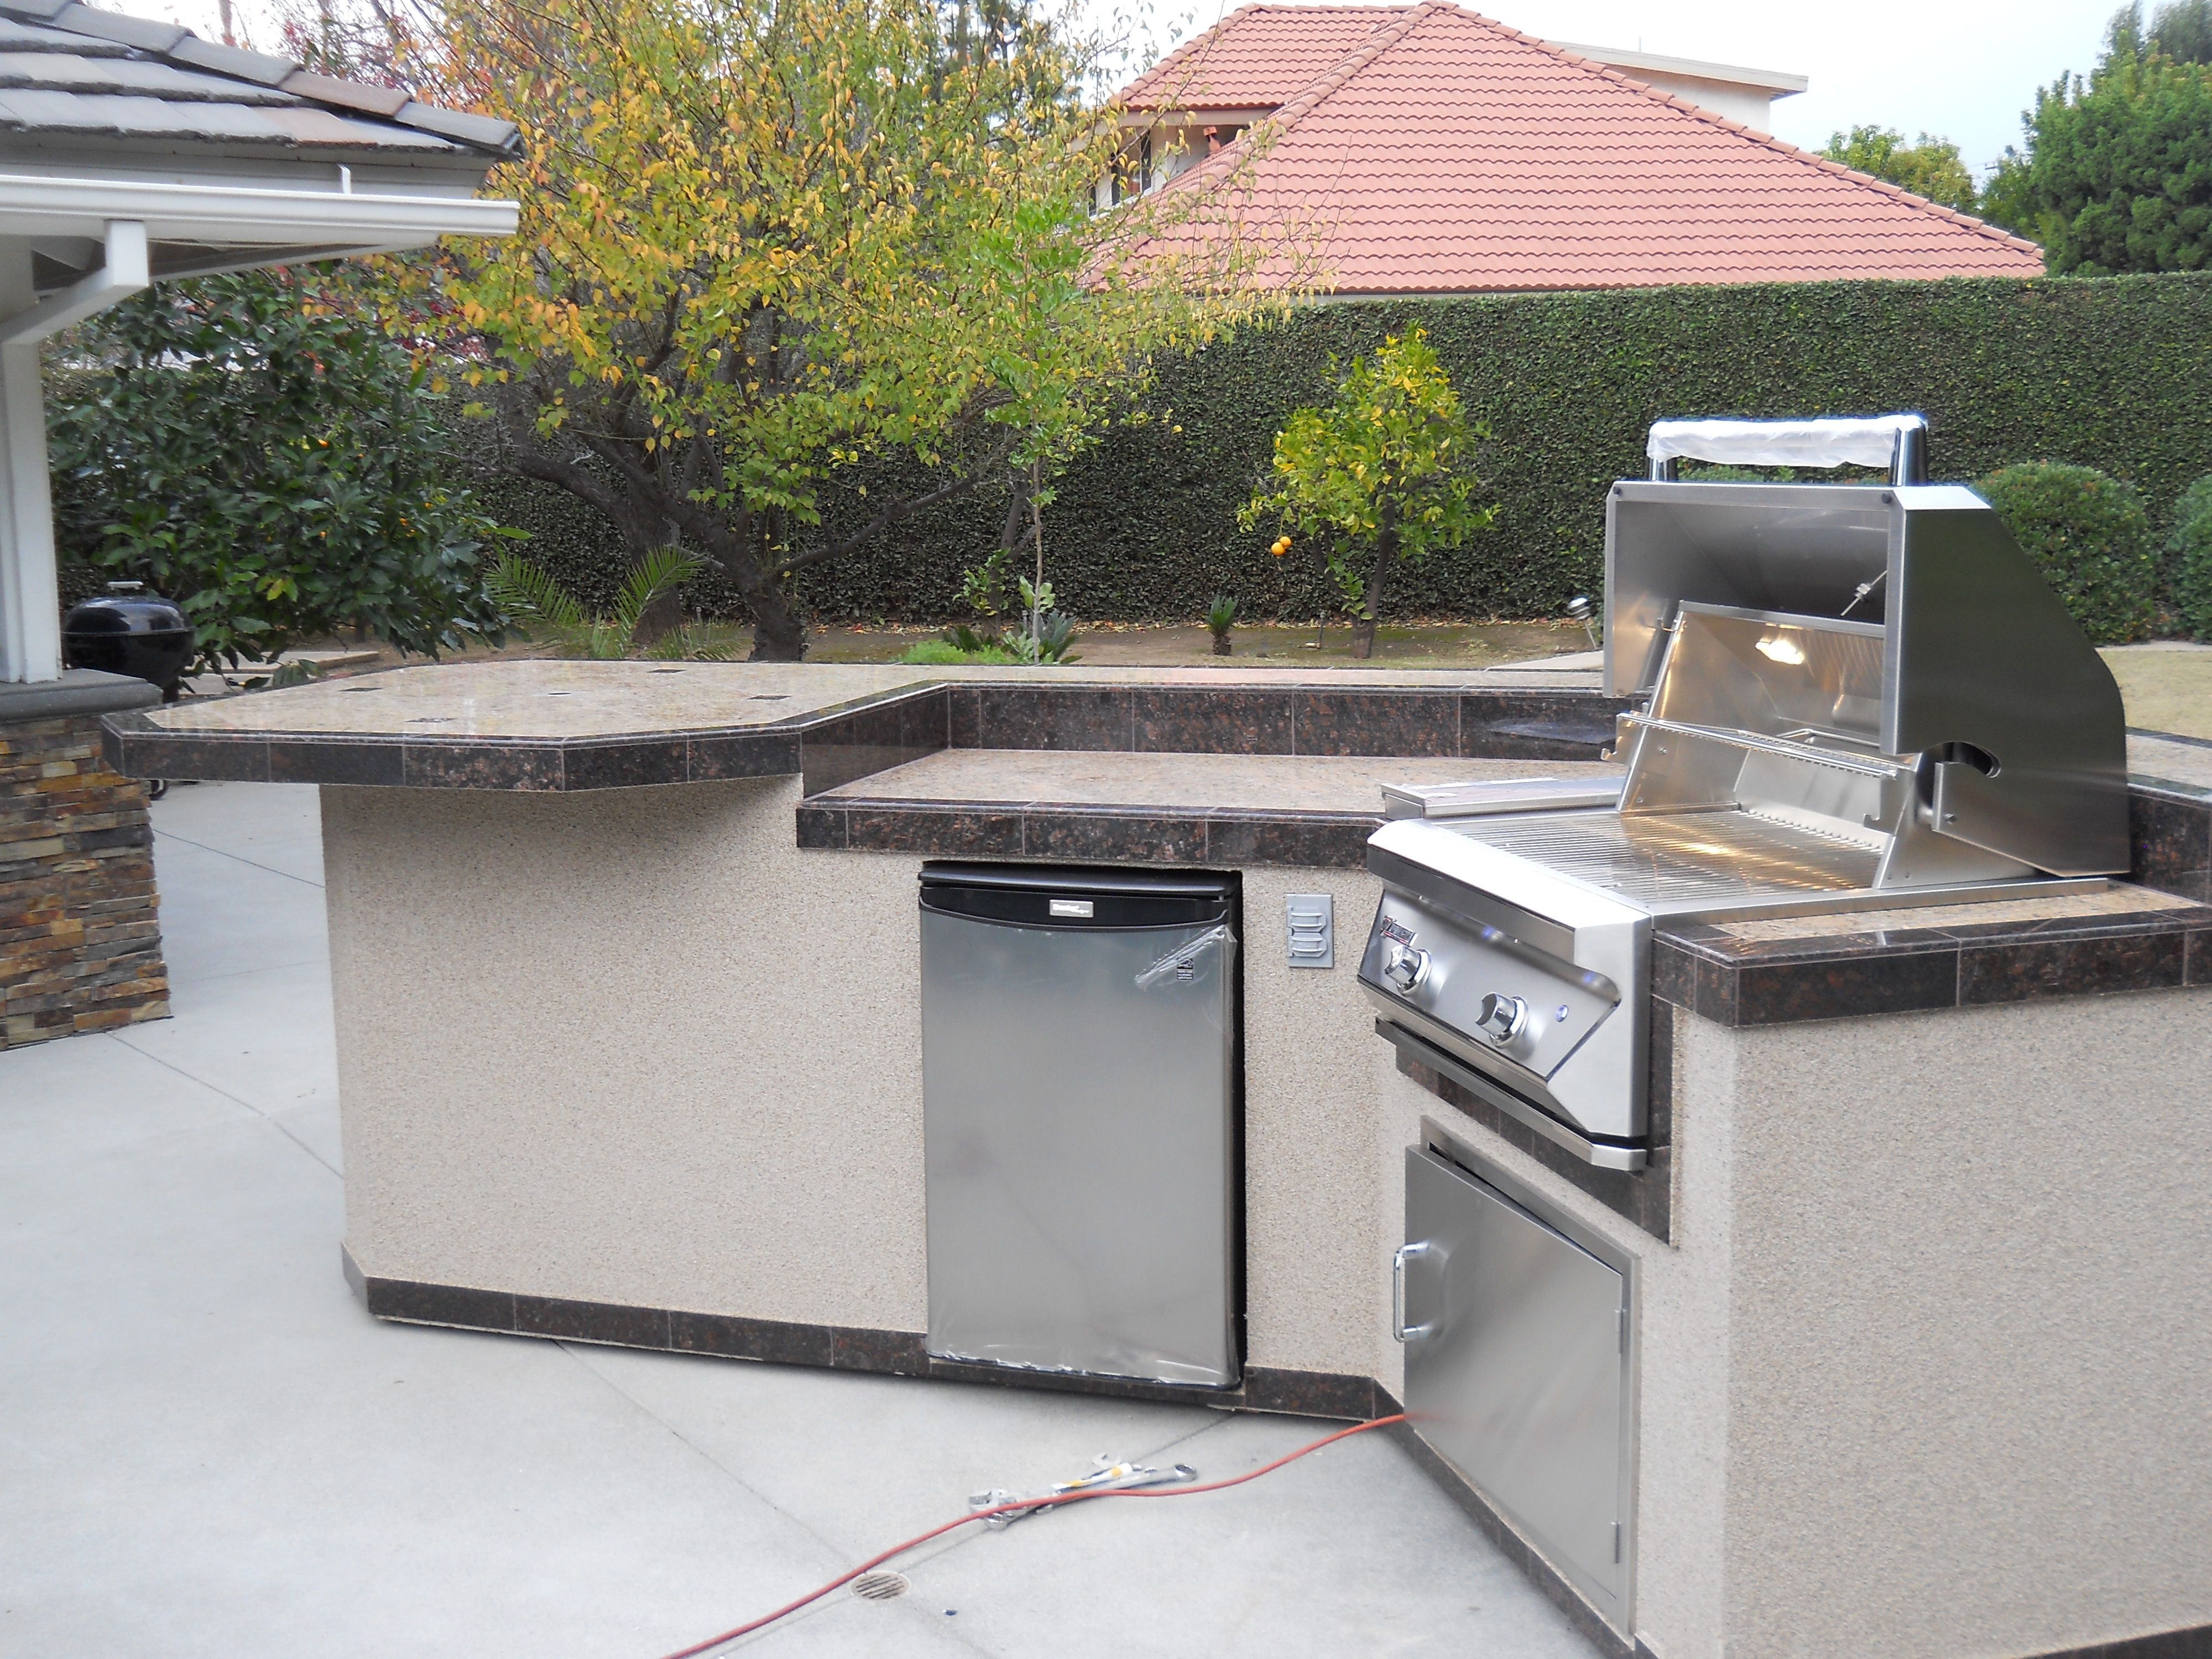 Custom built outdoor kitchen delivered to orange county ca built in grill mini fridge recessed lights access door bar seating